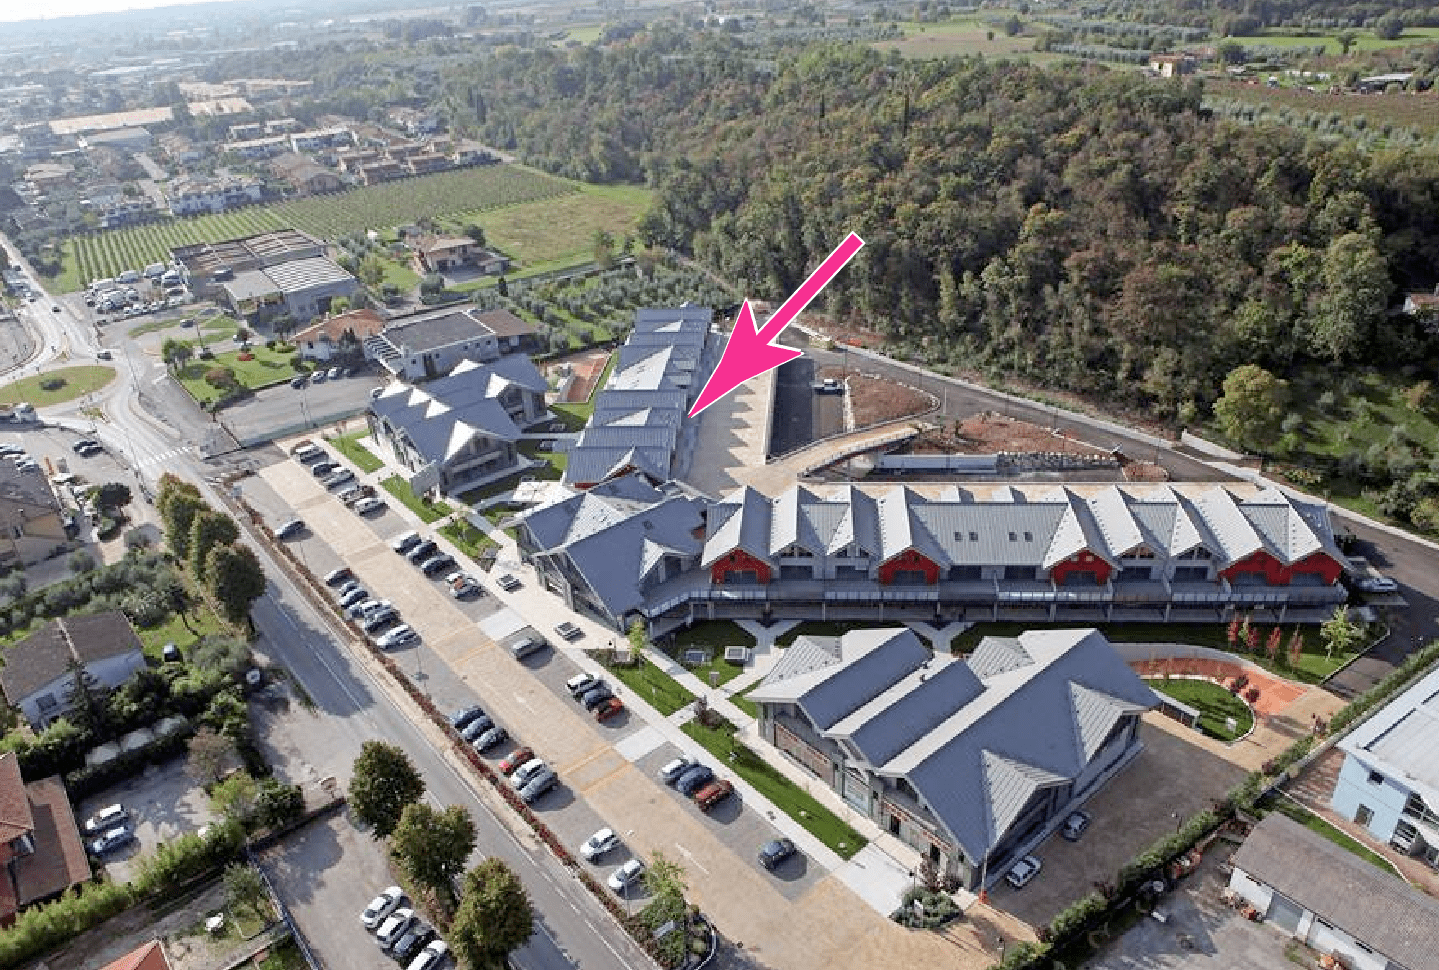 Holli-day.com headquarters in Italy